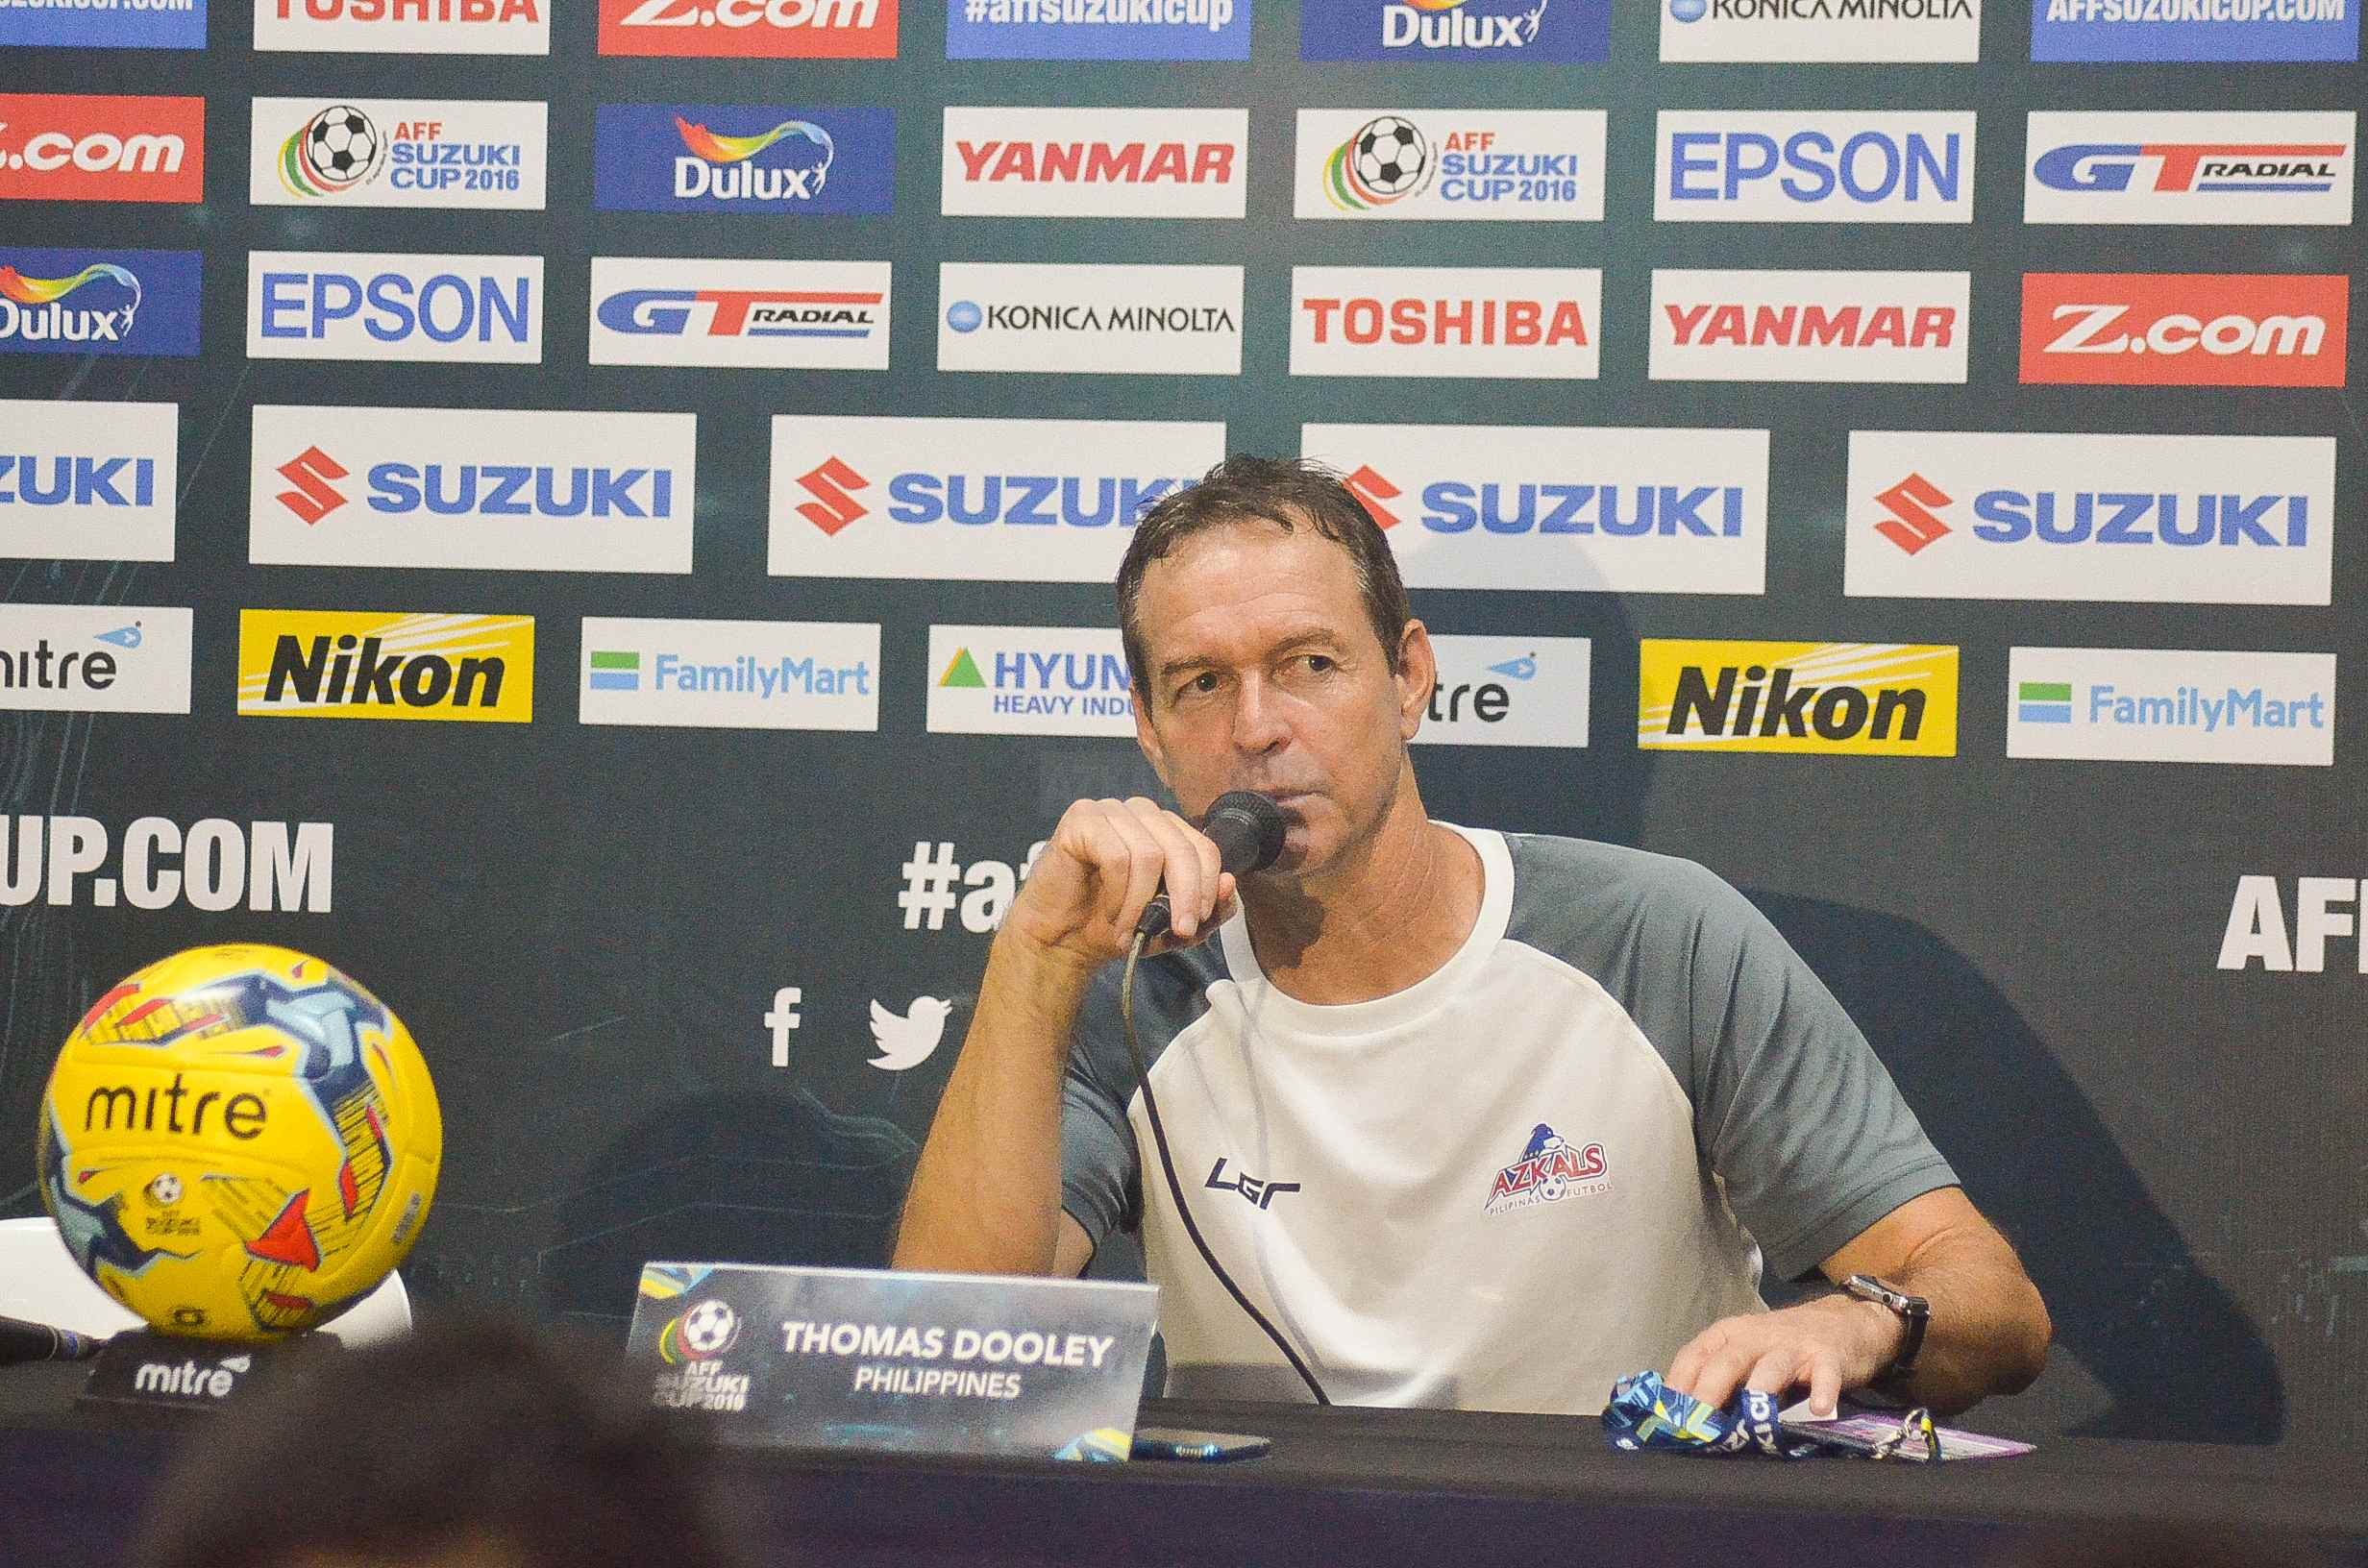 Coach Dooley chides lack of support from football fans in Manila